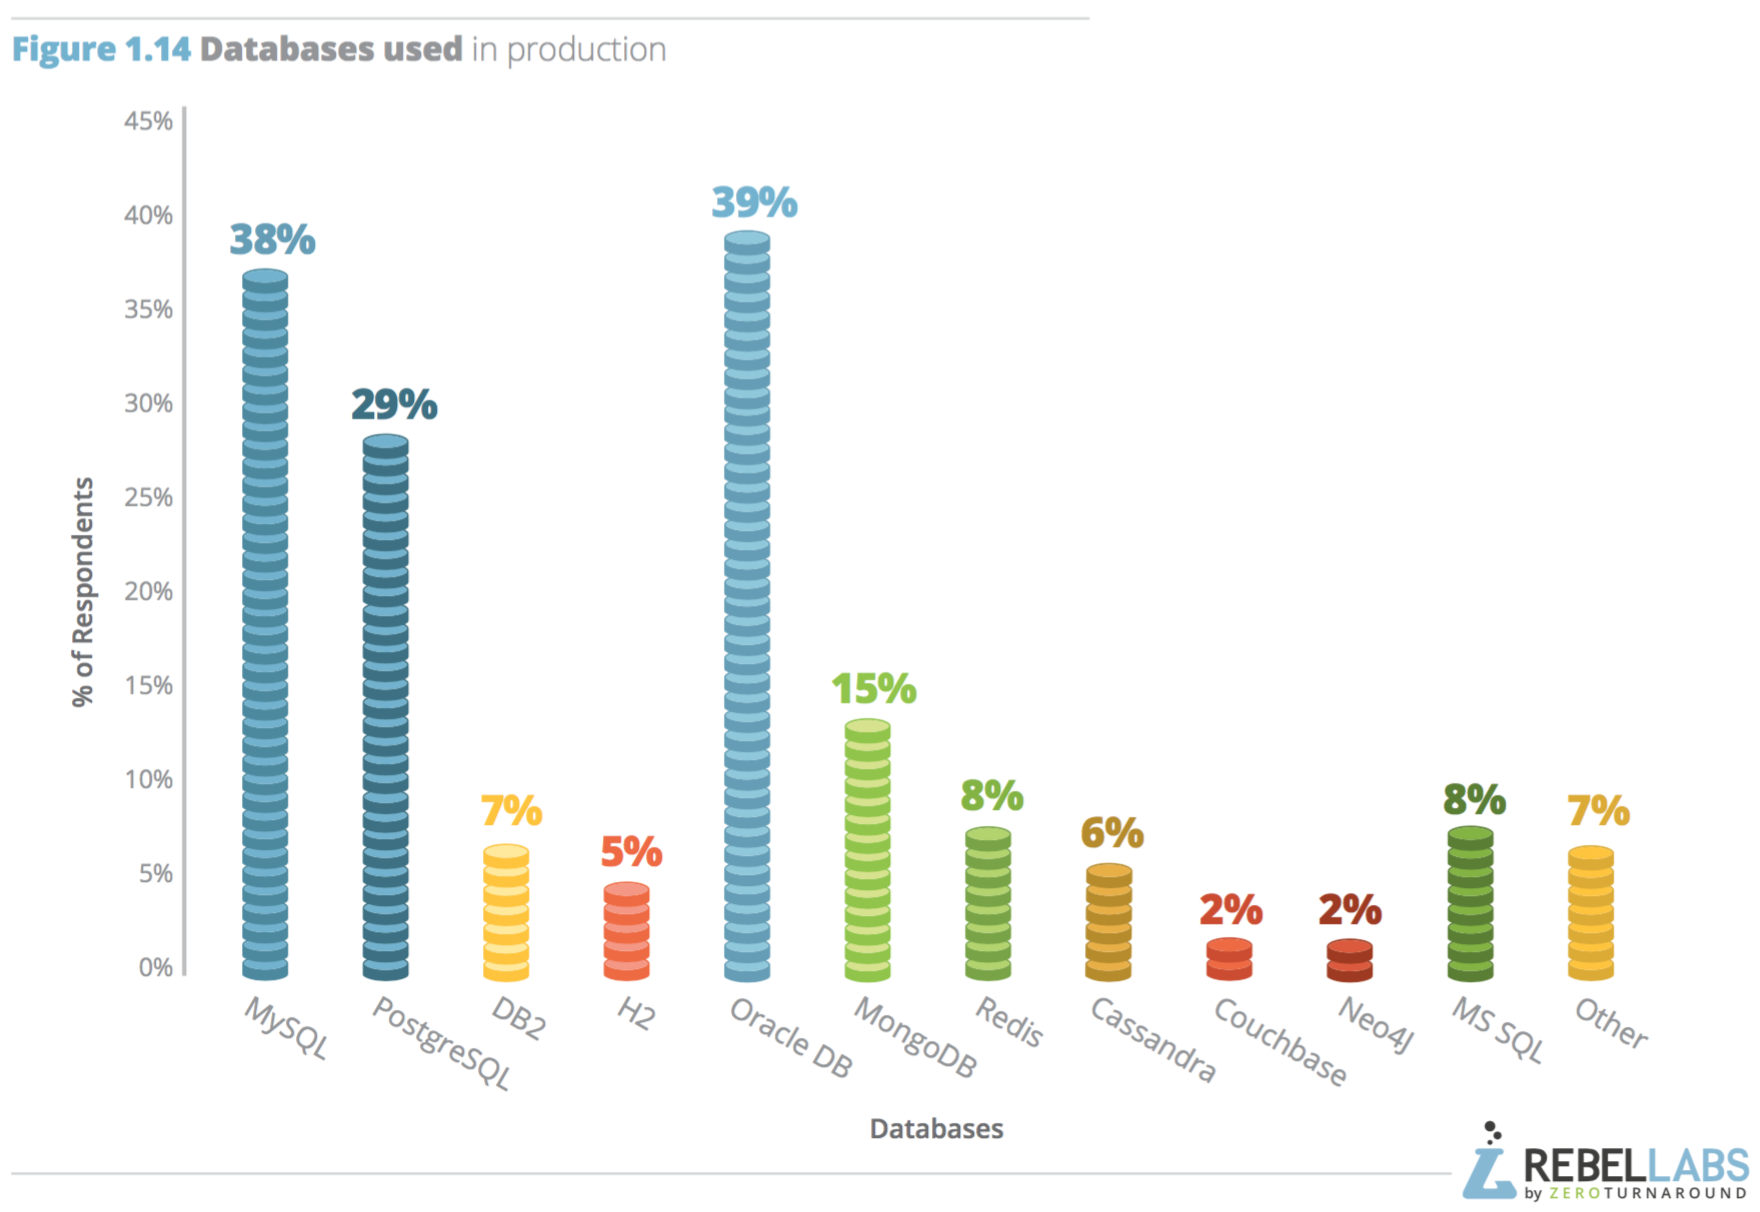 bar graph showing which databases respondents use in production